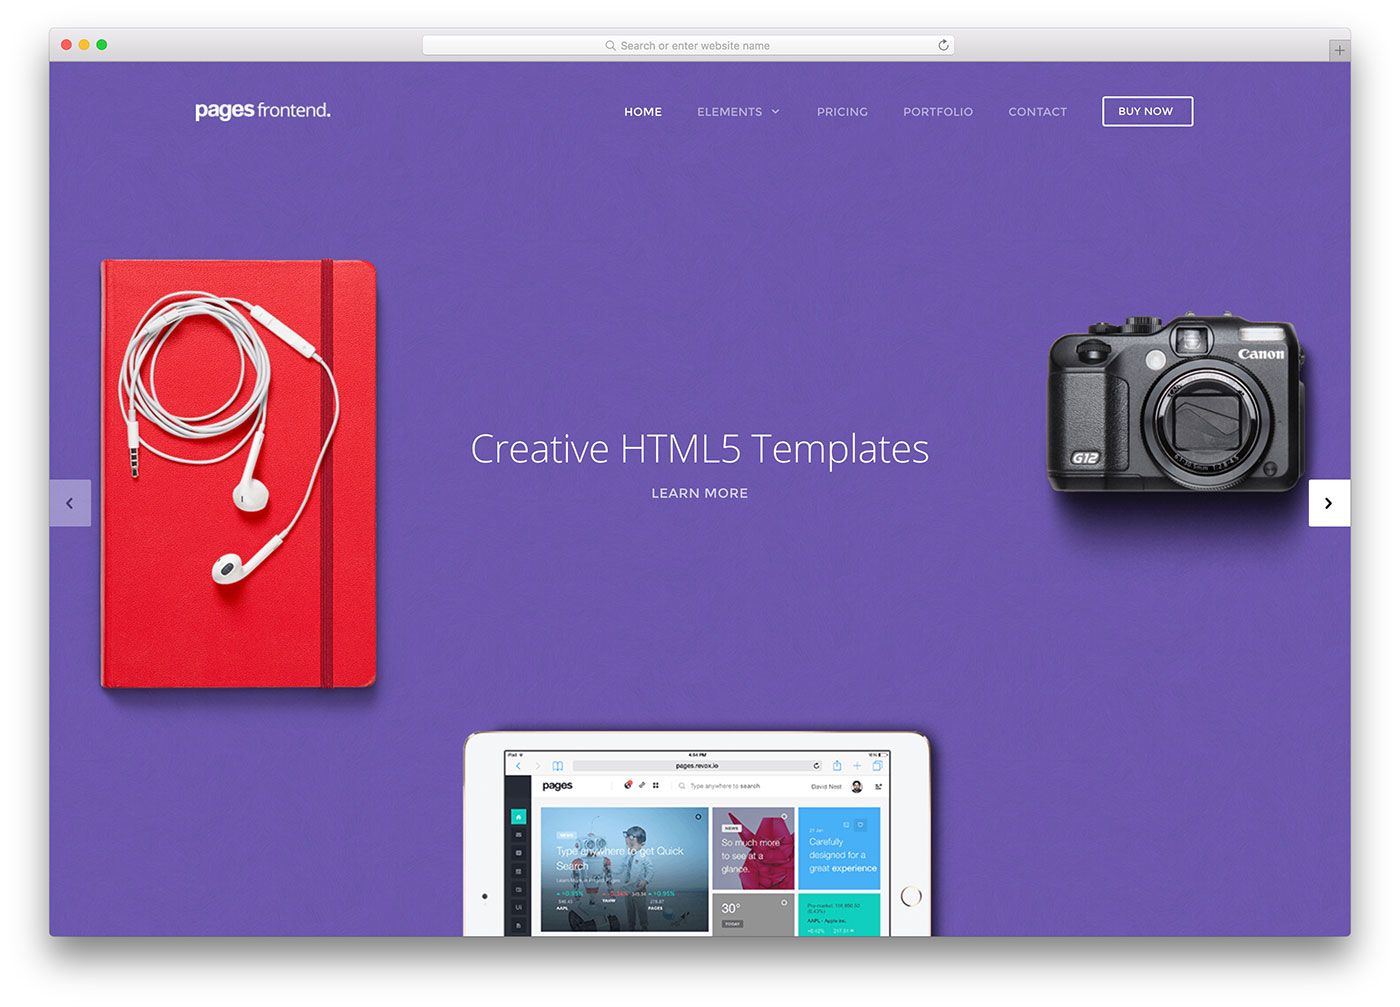 36 Creative HTML5/CSS3 Website Templates To Create Unique Websites 2018